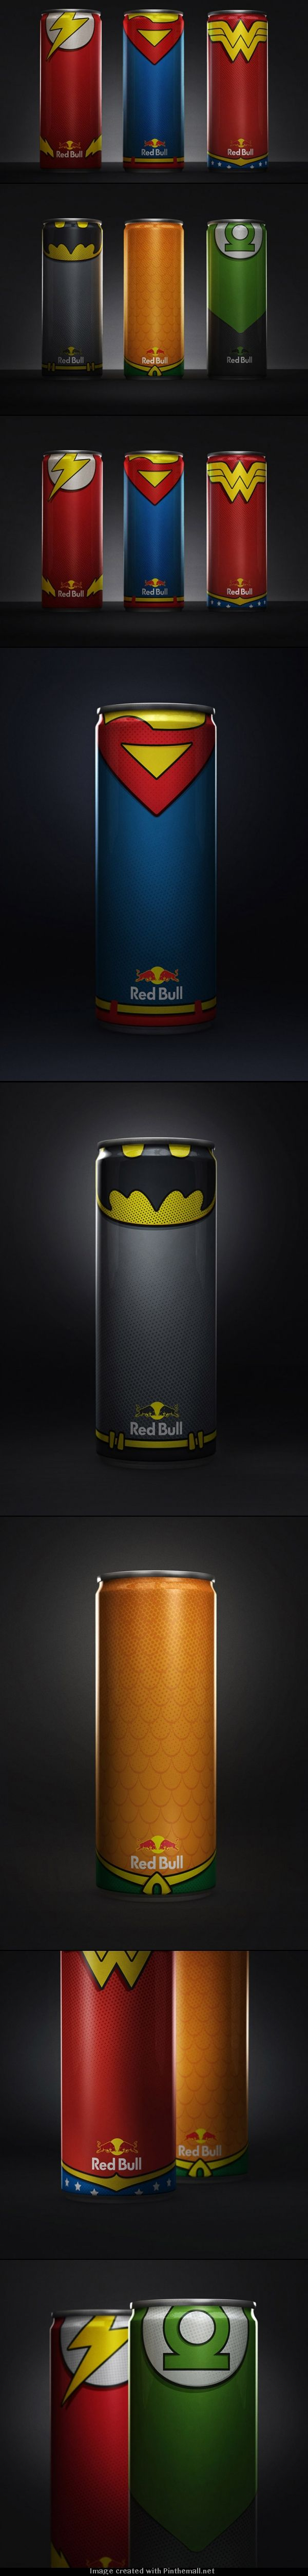 Red Bull League of Justice. Look the Package! A new experience from experiental marketing #themarketingis